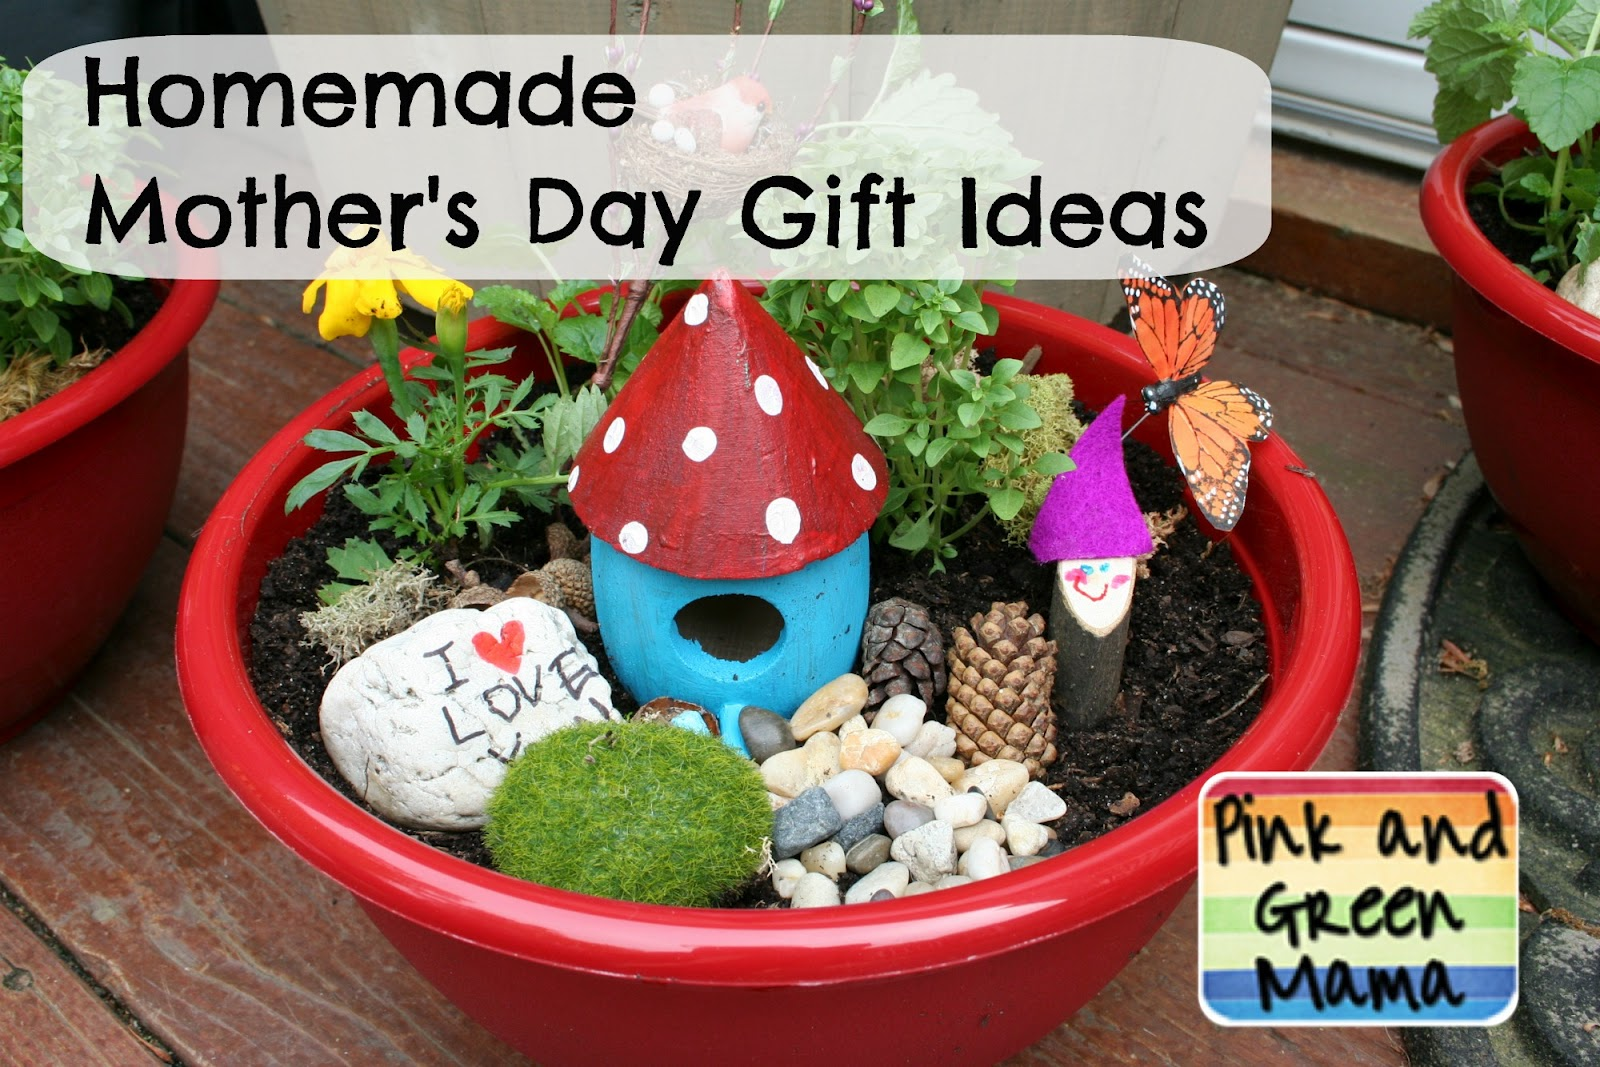 Pink and Green Mama: * Homemade Mother's Day Gift Ideas